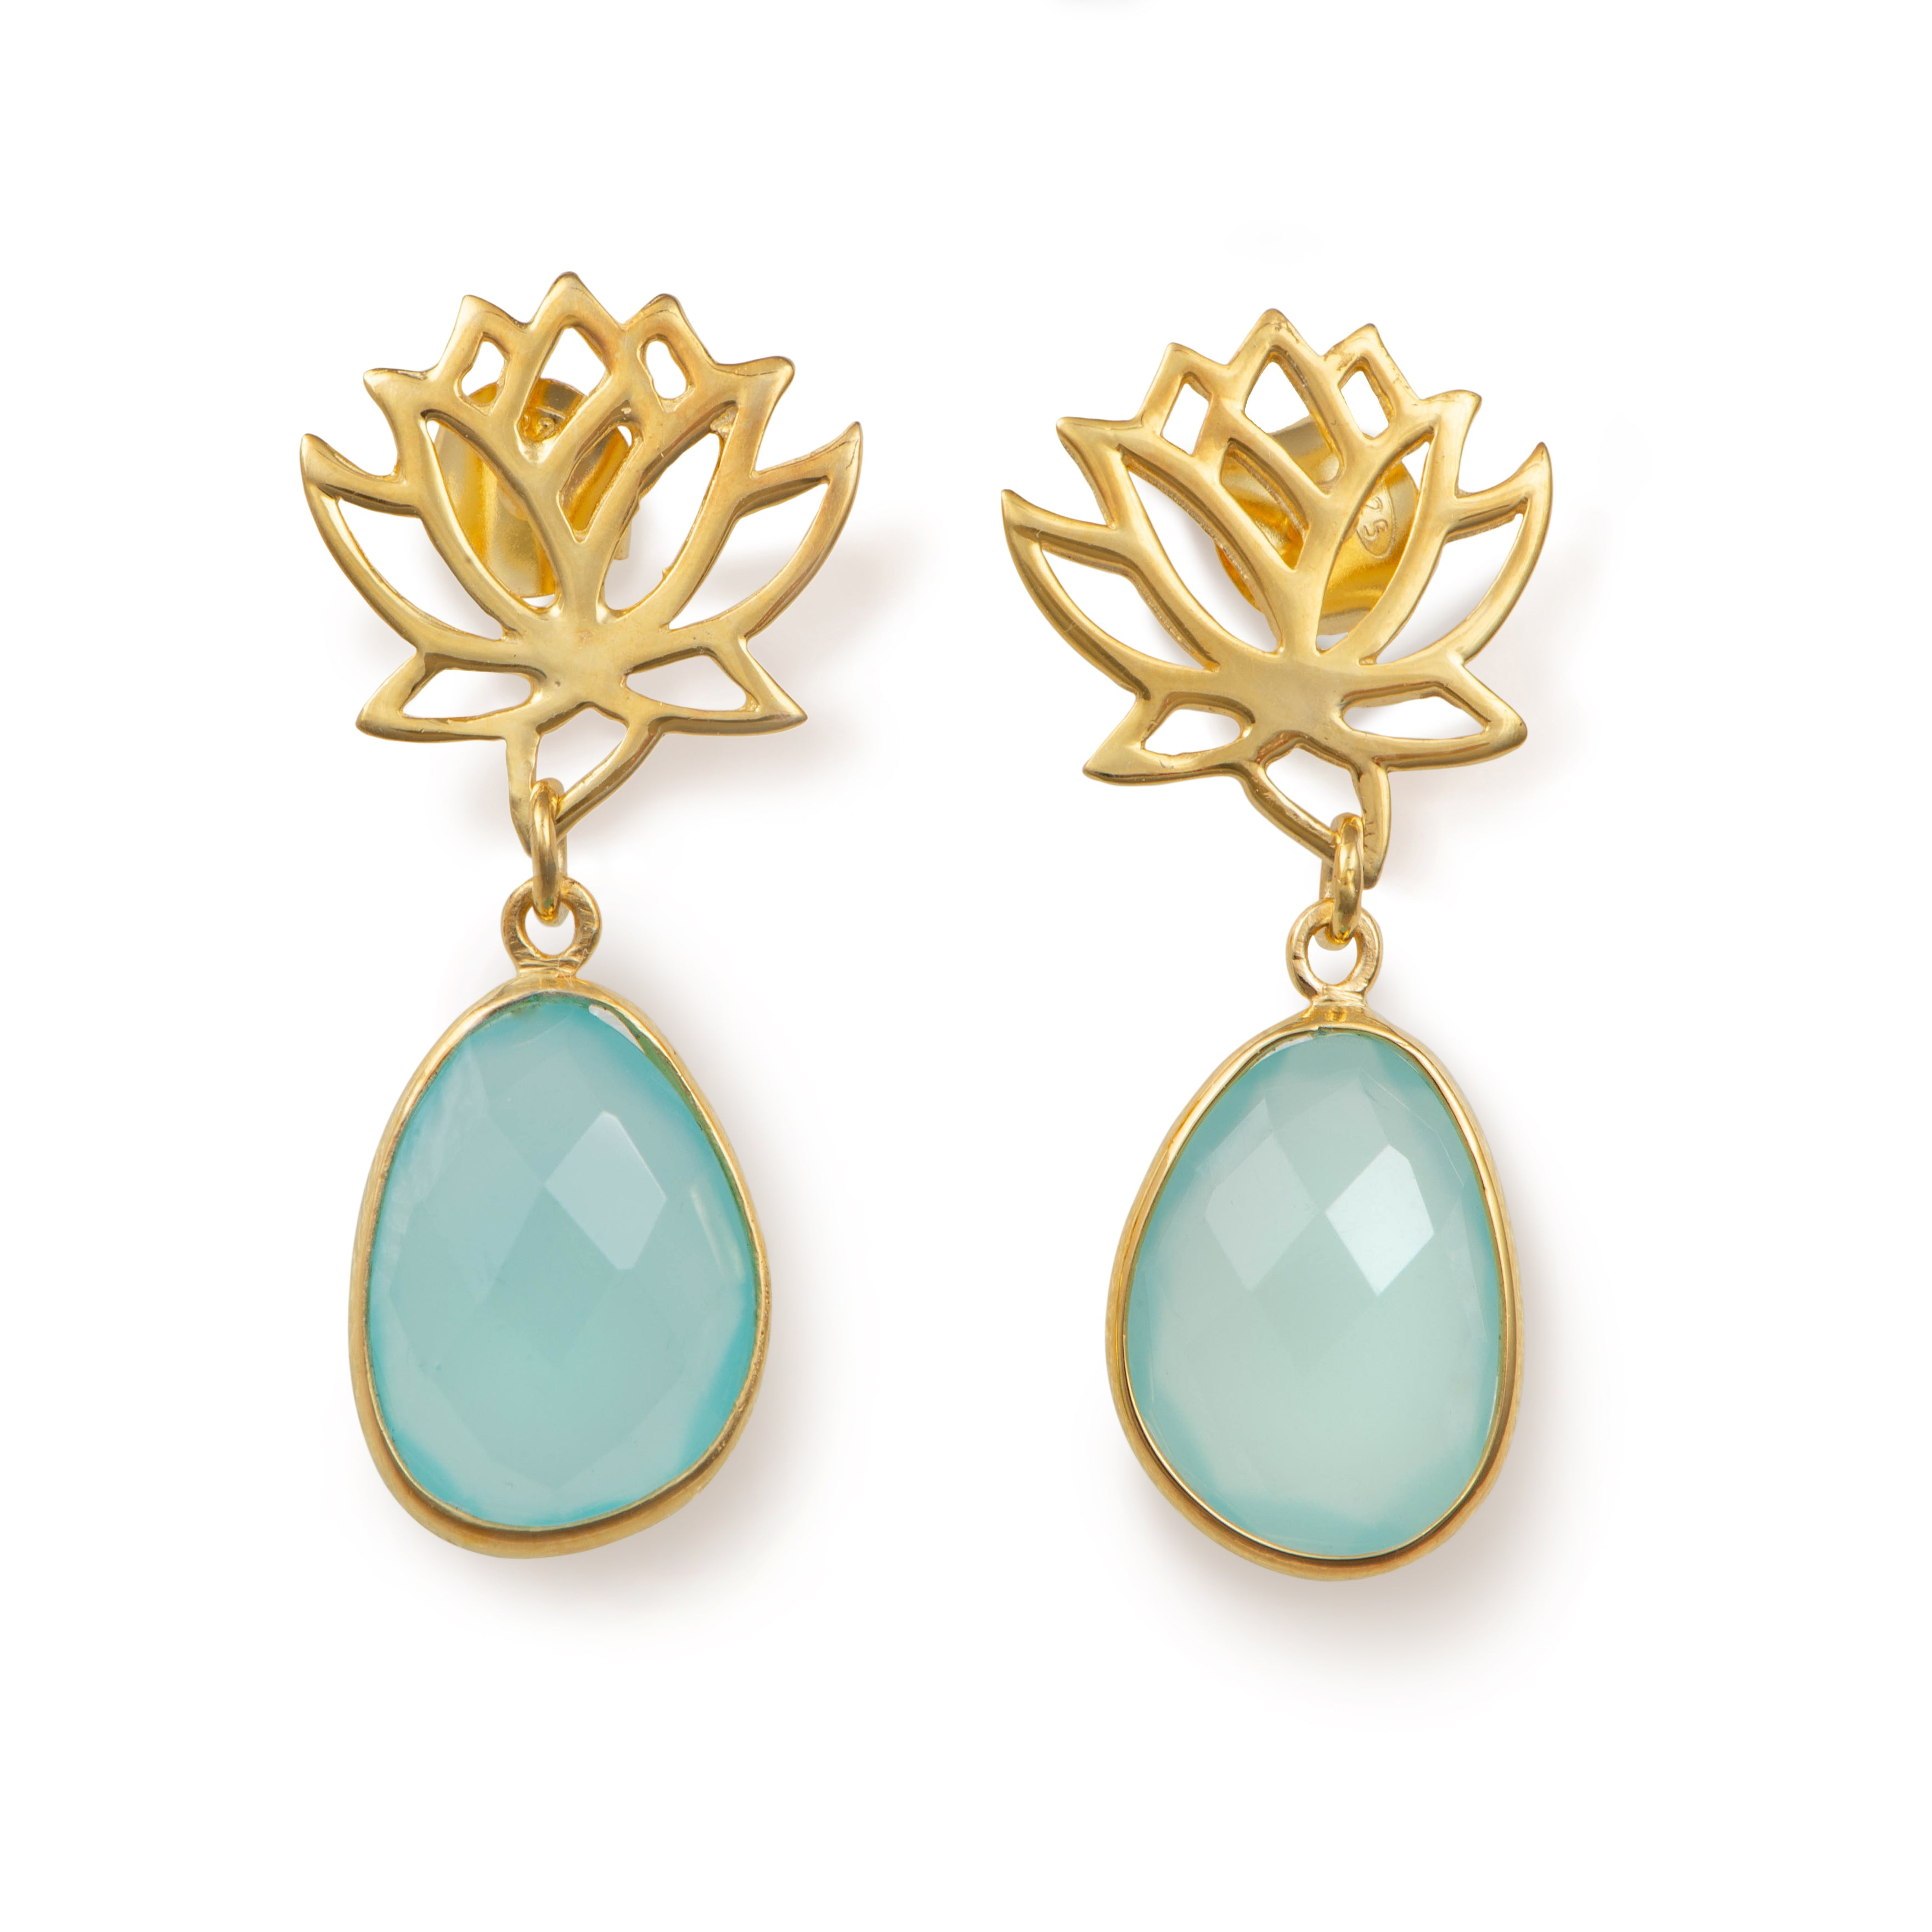 Lotus Earrings in Gold Plated Sterling Silver with an Aqua Chalcedony Gemstone Drop